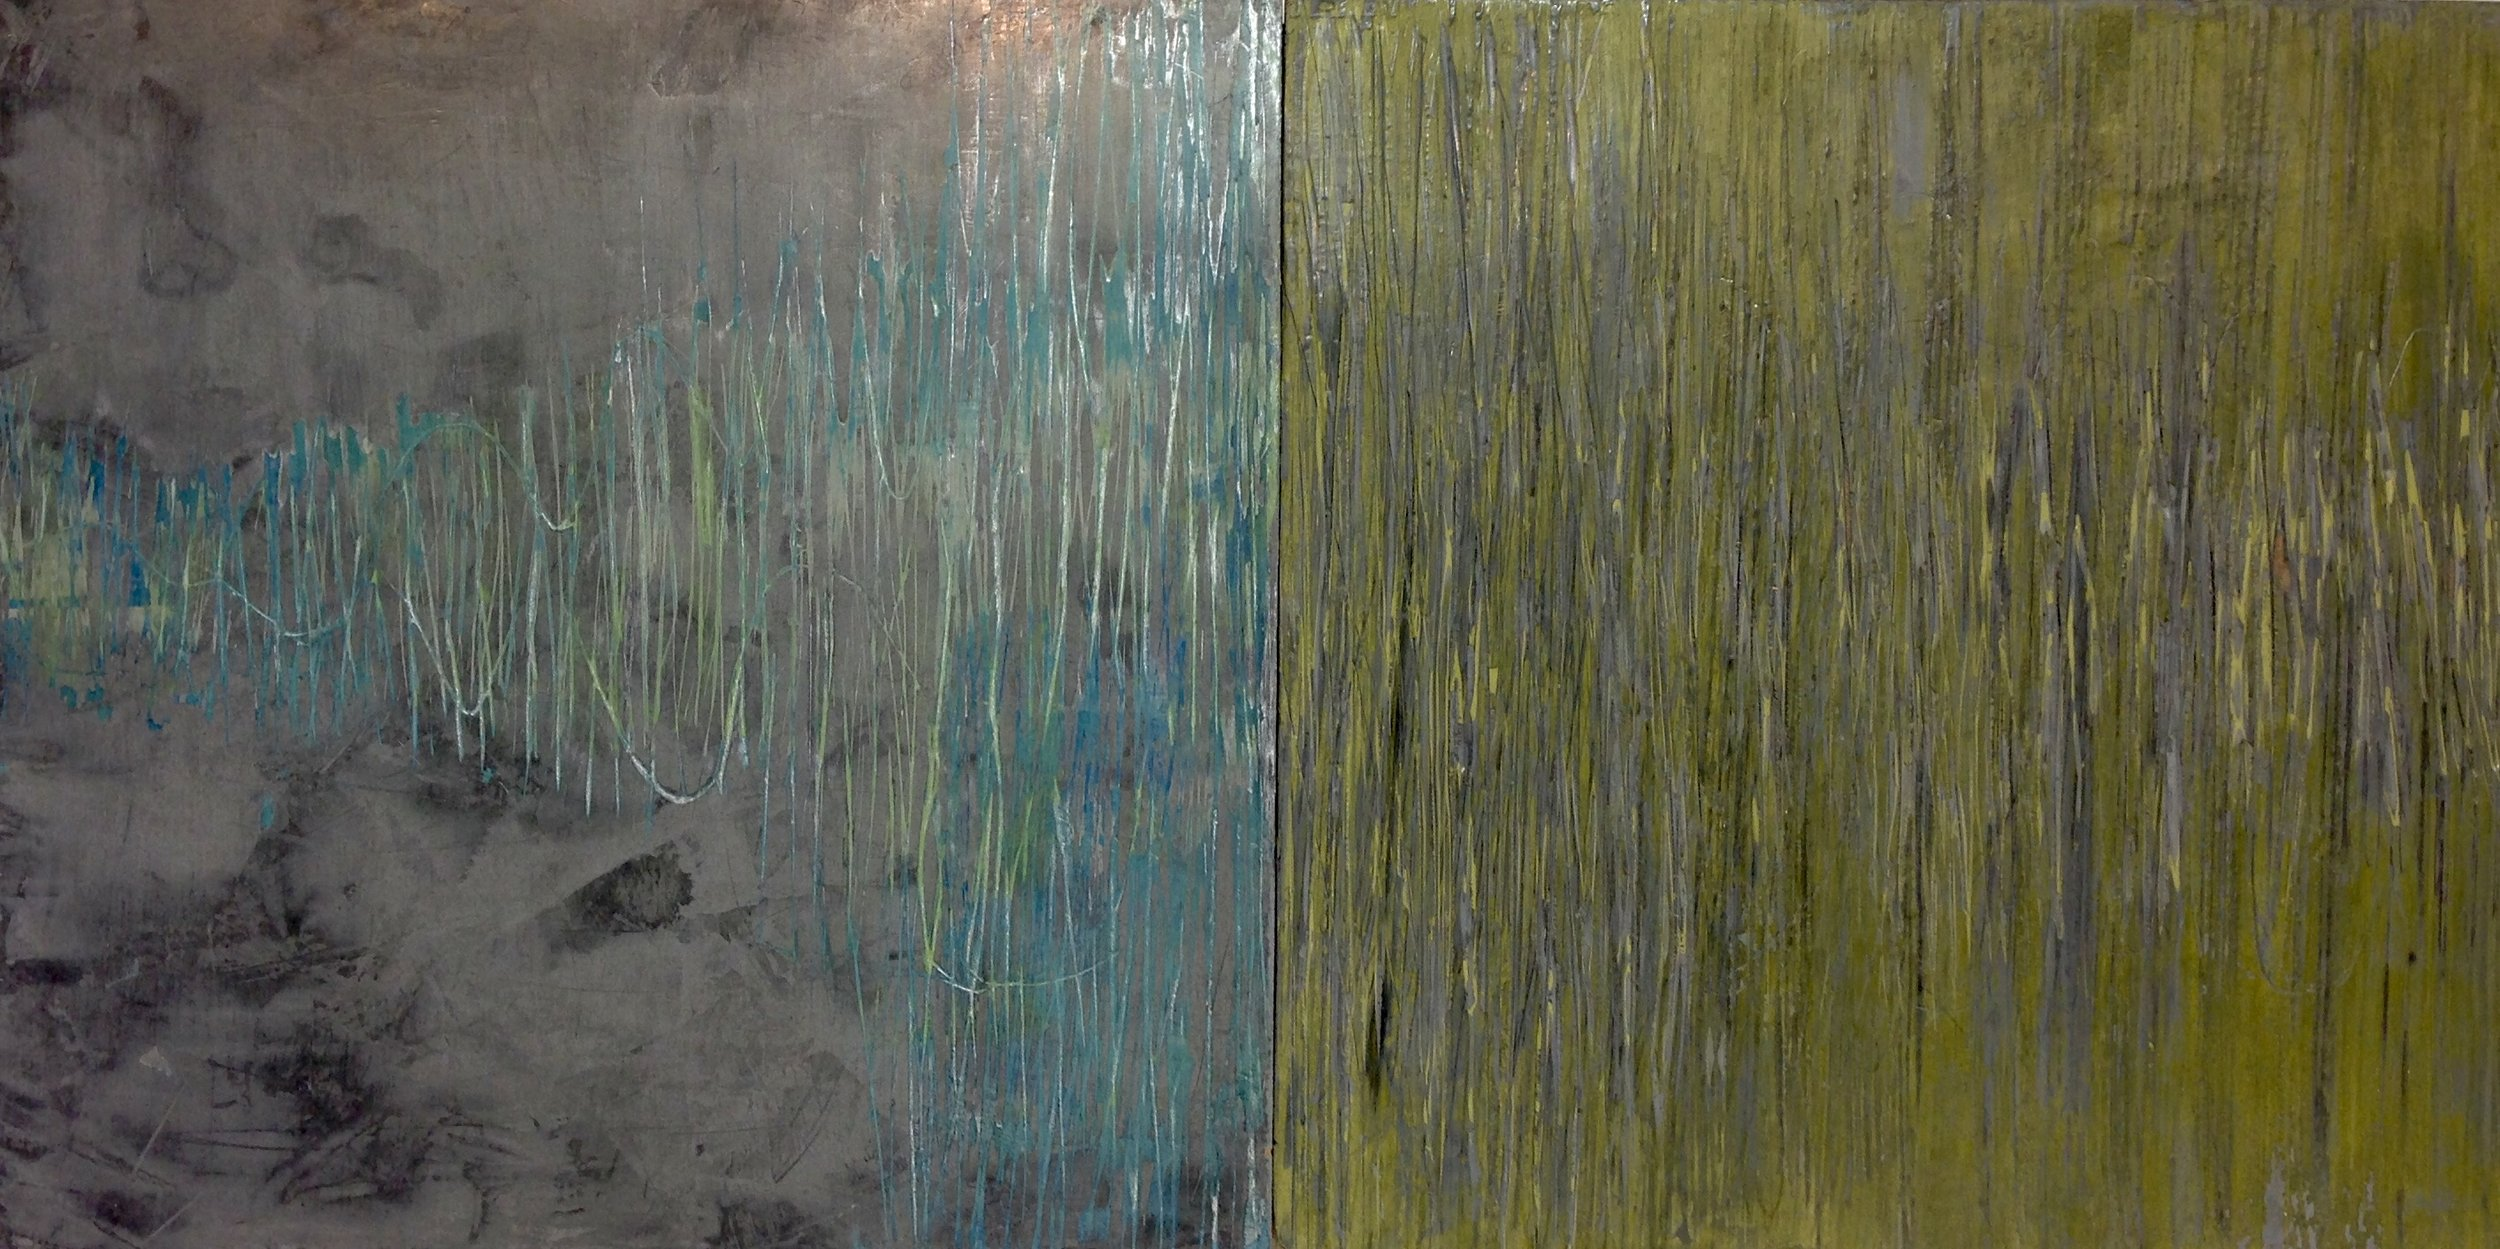 Rebecca Spivack     Diptych 4    2017  Integrated colored plaster and  Prismacolor pencil construction  Signed, titled, and dated by the artist,  verso   12 x 24 inches